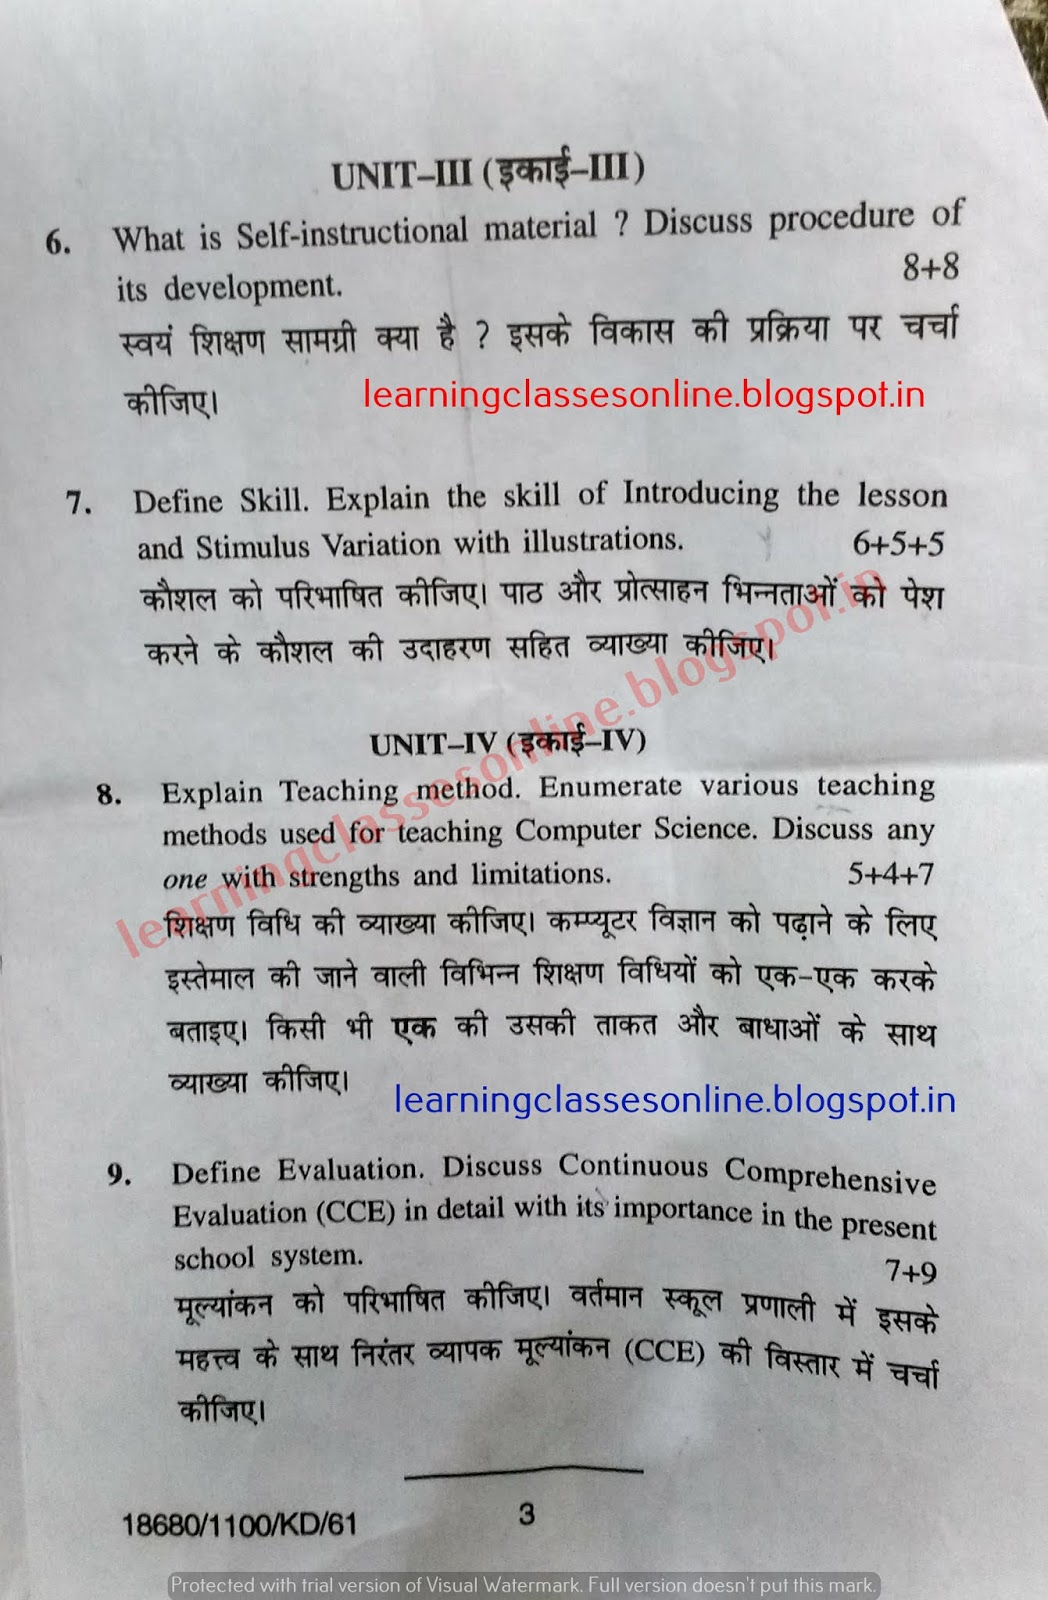 Pedagogy of computer science 2017 question paper